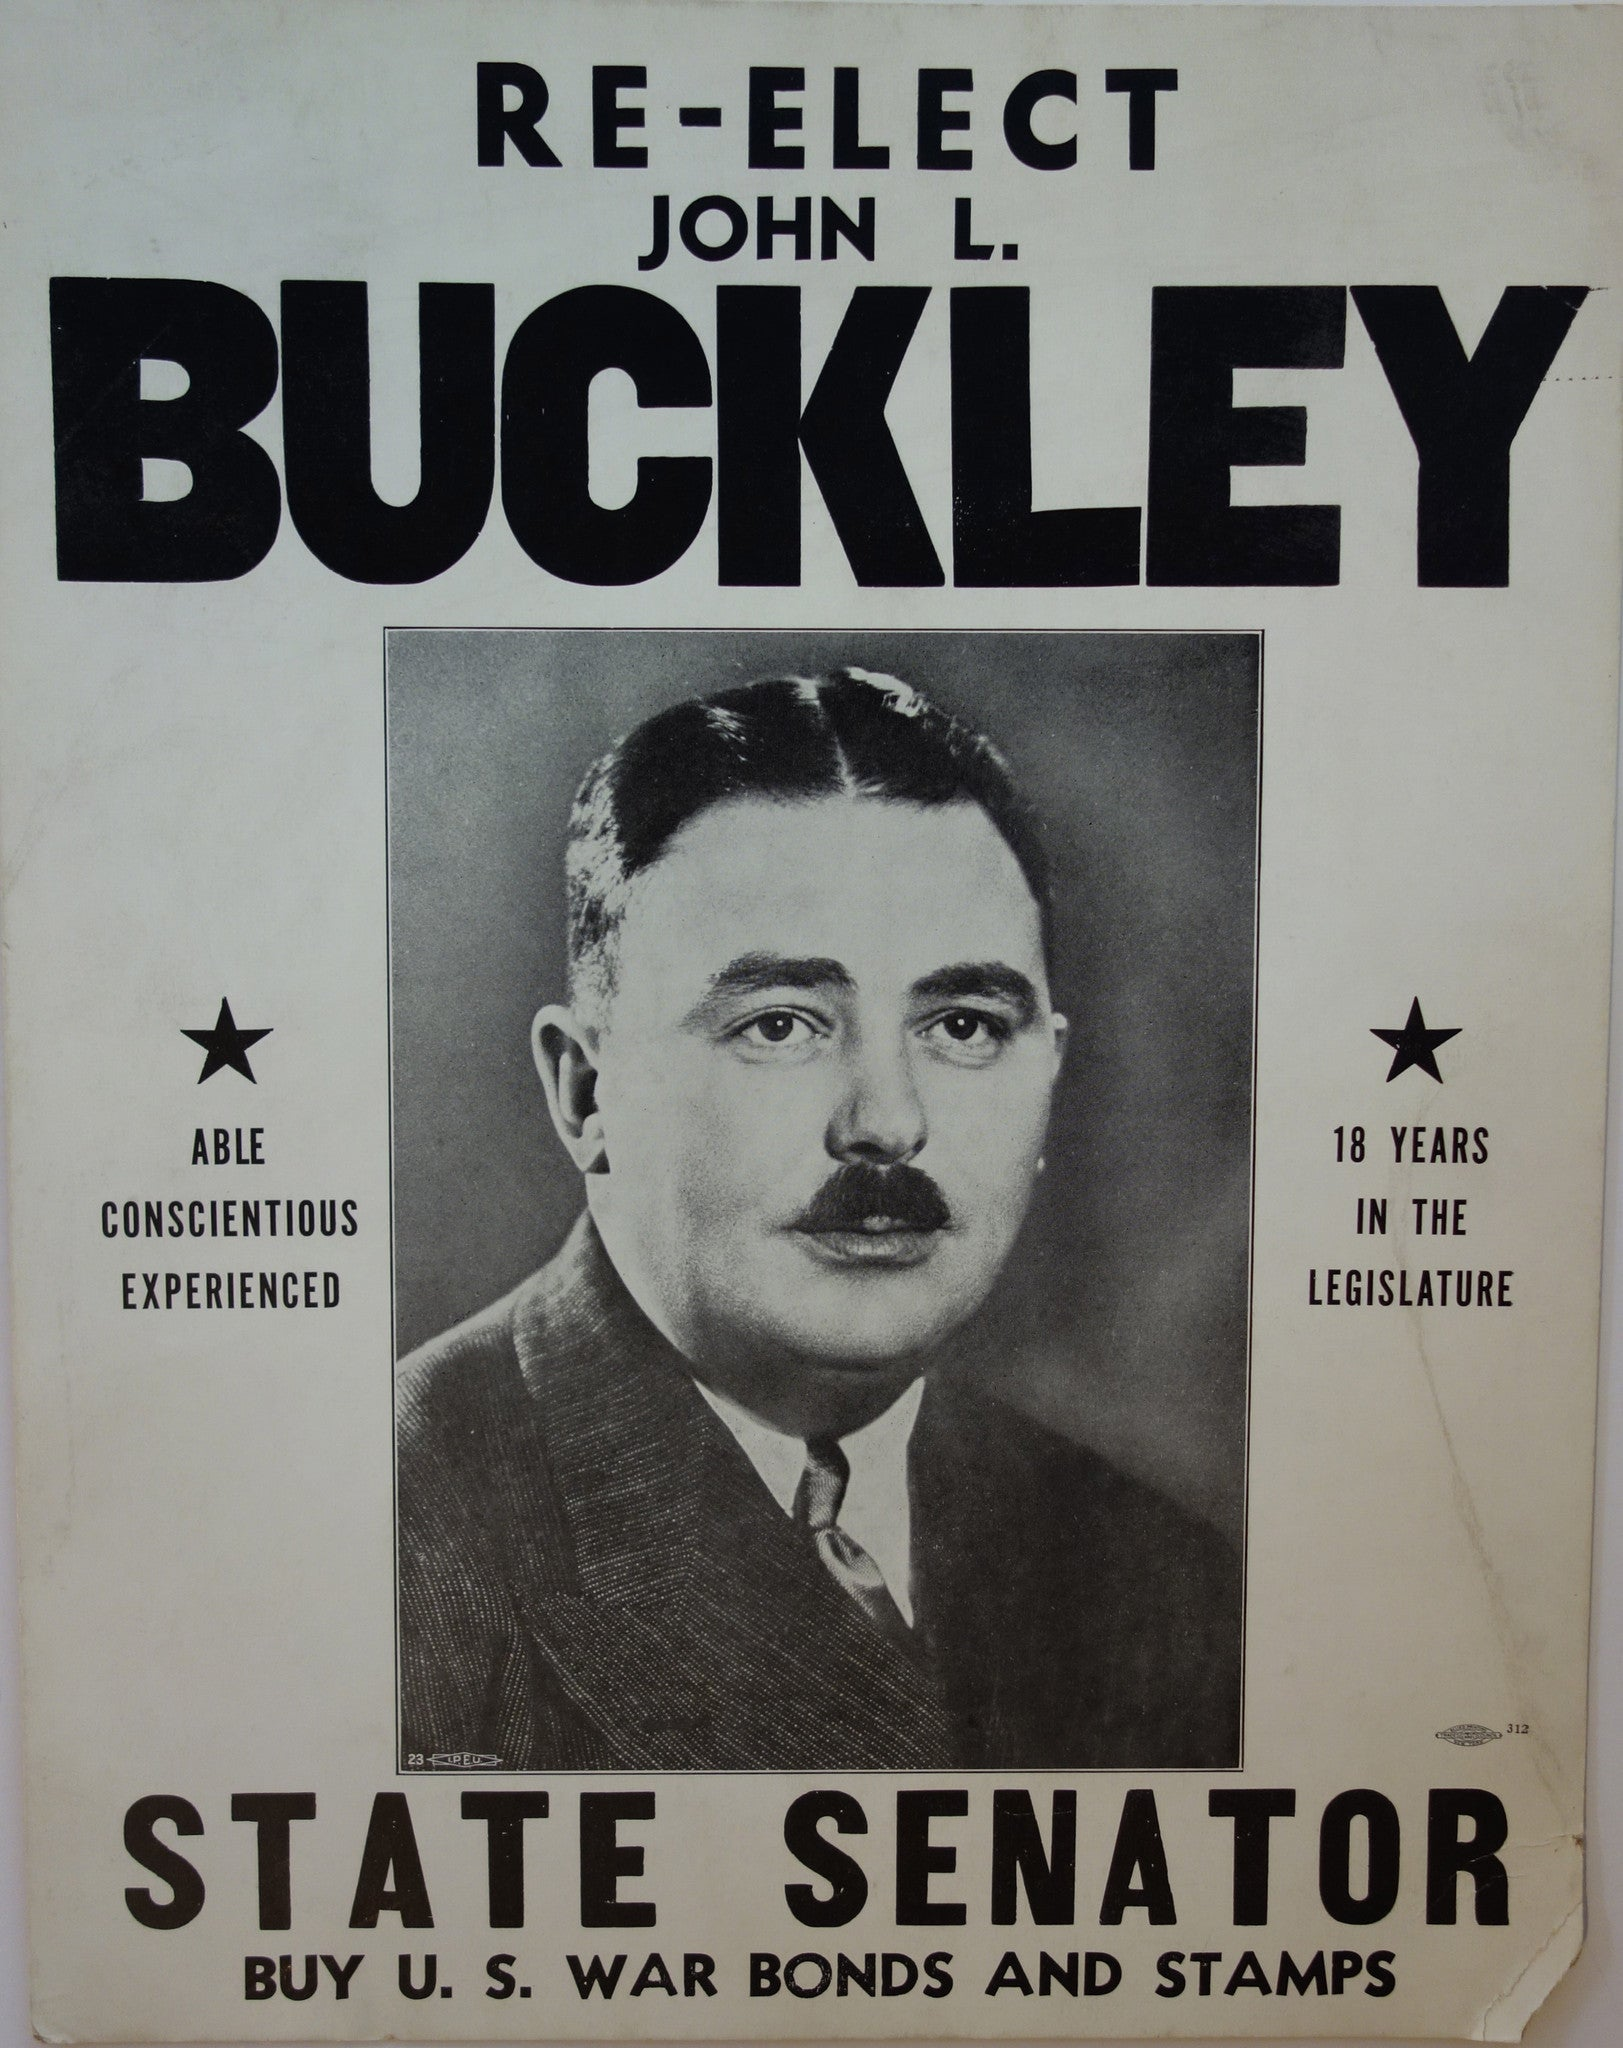 Re-Elect John L. Buckley